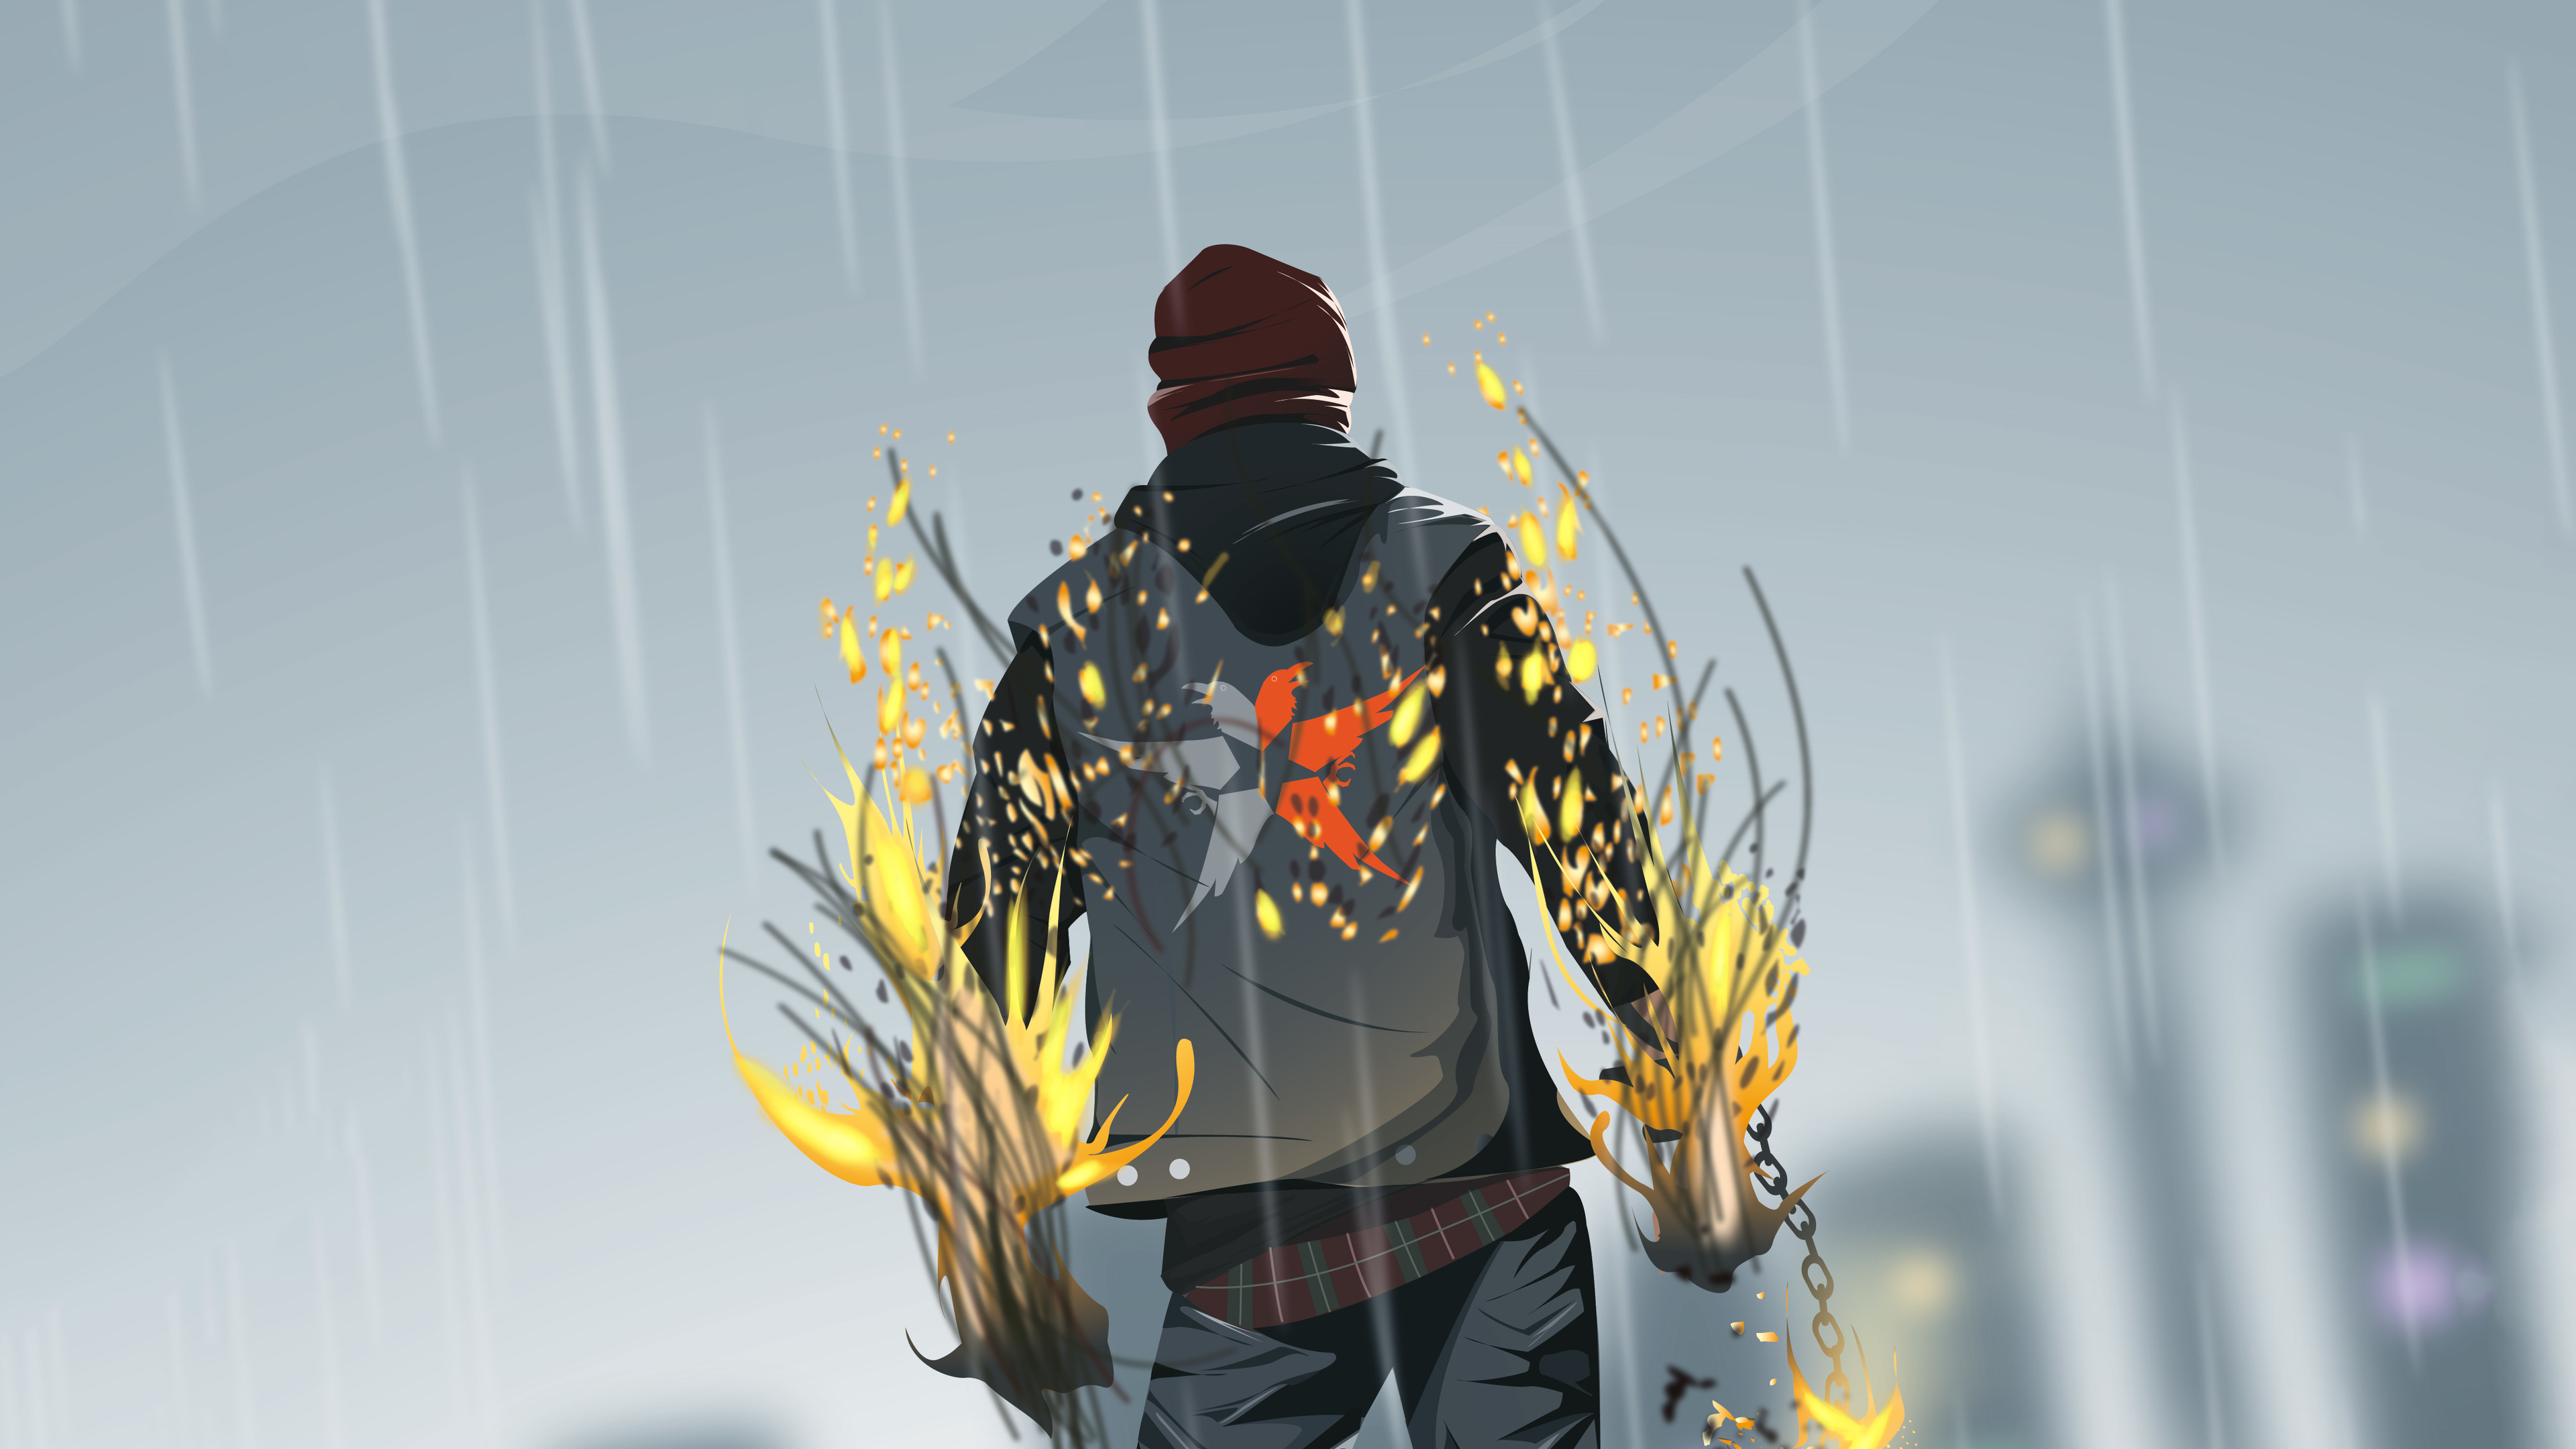 infamous second son game 4k 1540755158 - Infamous Second Son Game 4k - hd-wallpapers, digital art wallpapers, deviantart wallpapers, artwork wallpapers, artist wallpapers, 4k-wallpapers